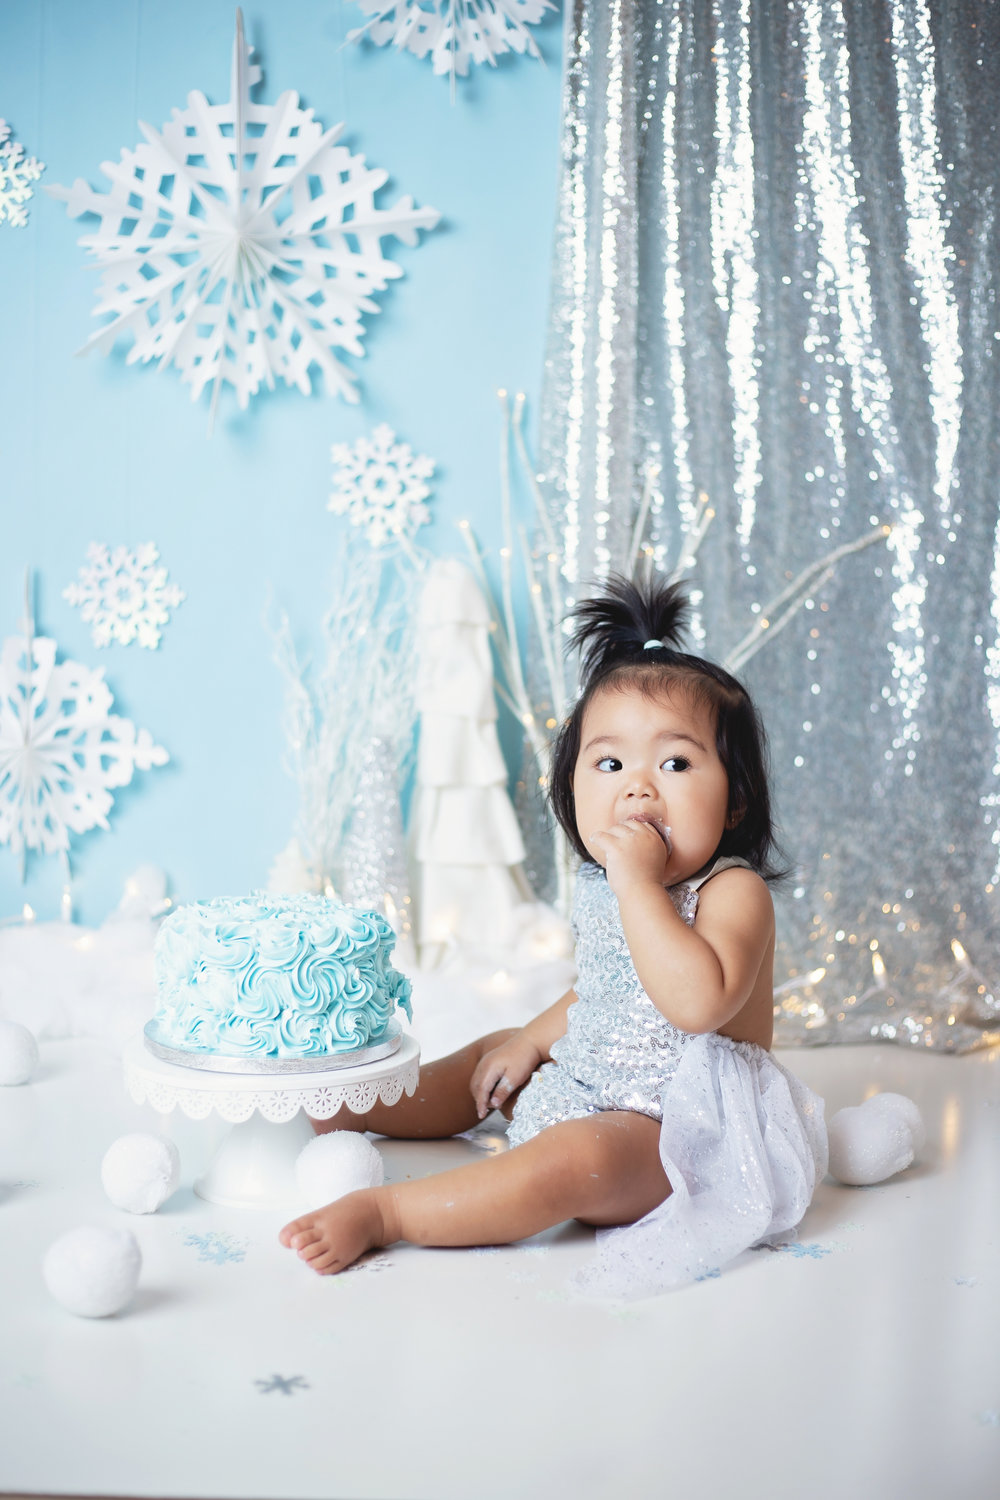 anchorage-cake-smash-photographer-8.jpg